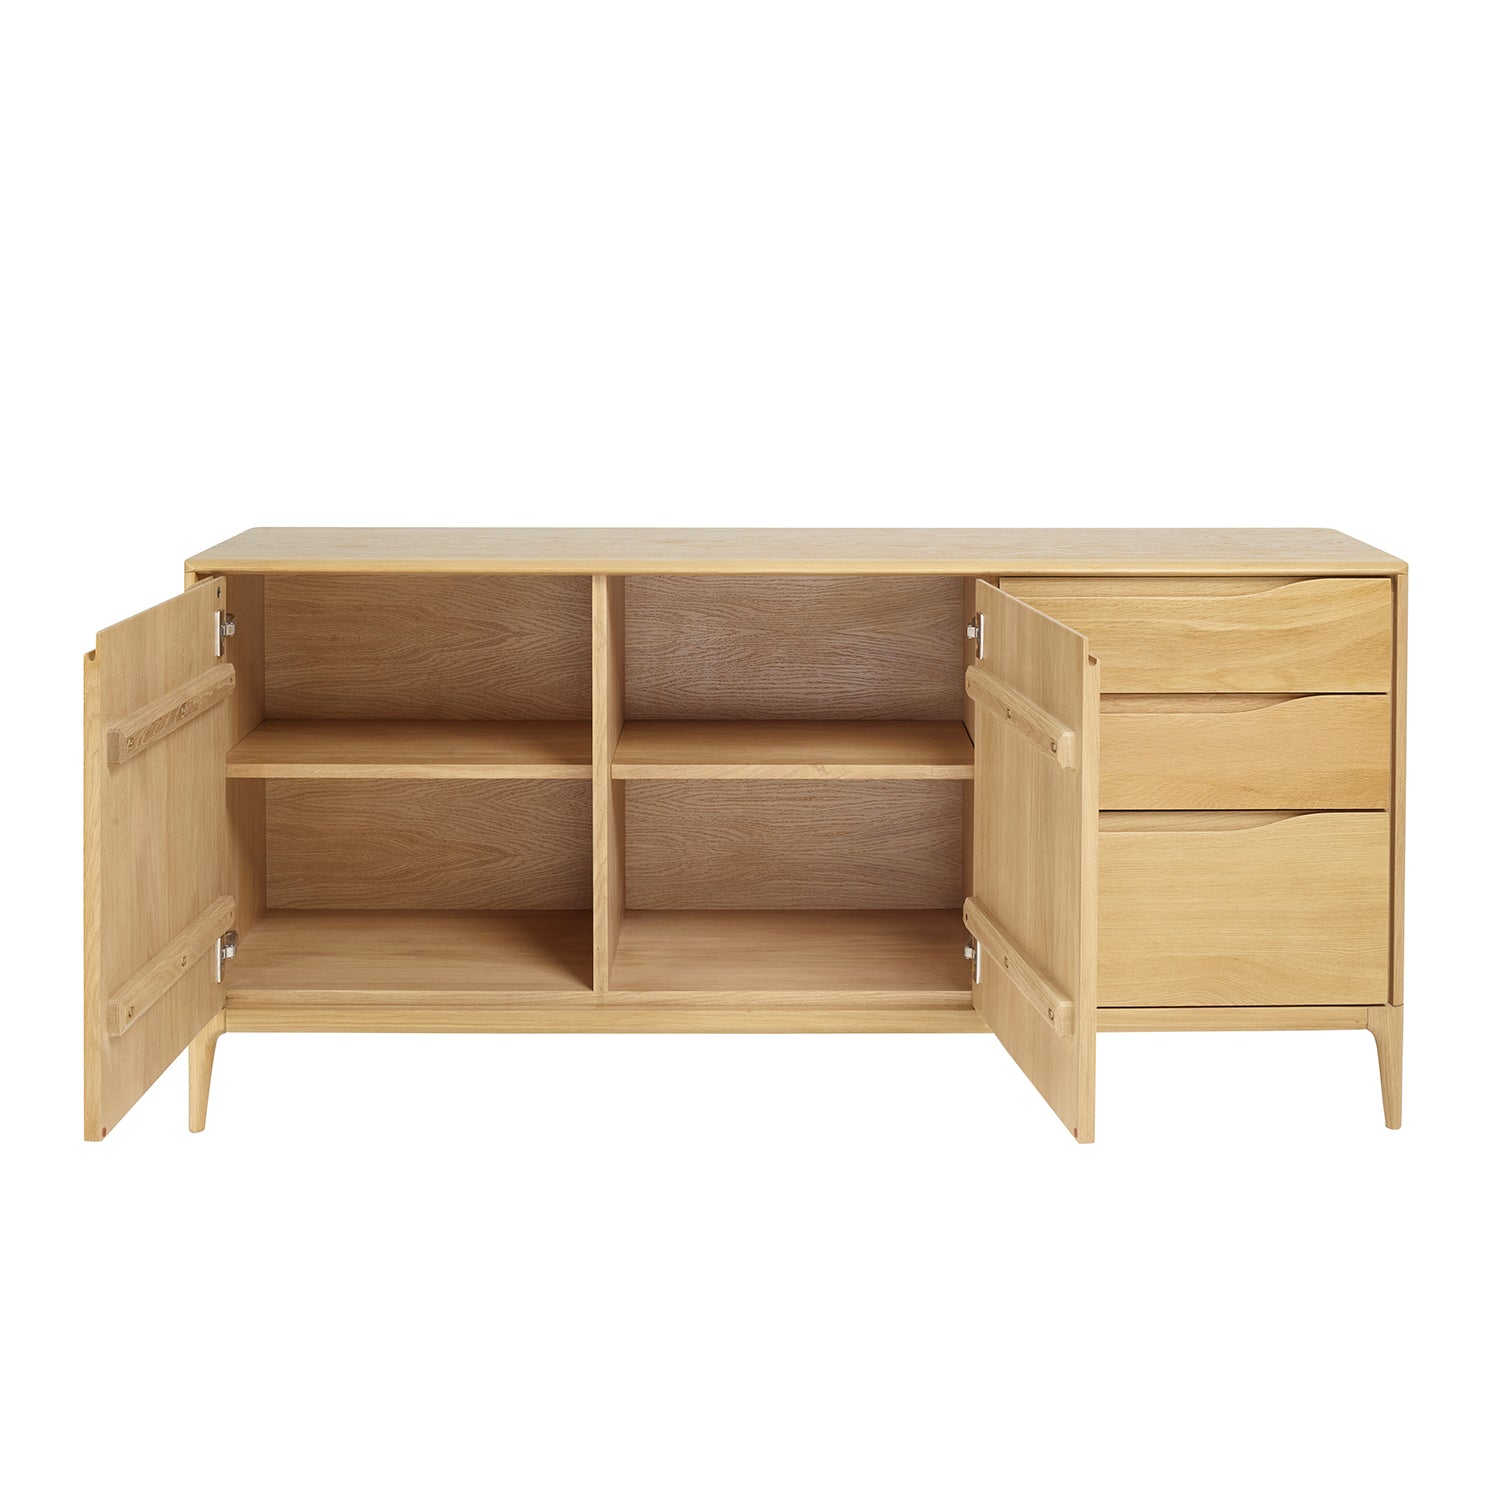 Romana Sideboard: Large